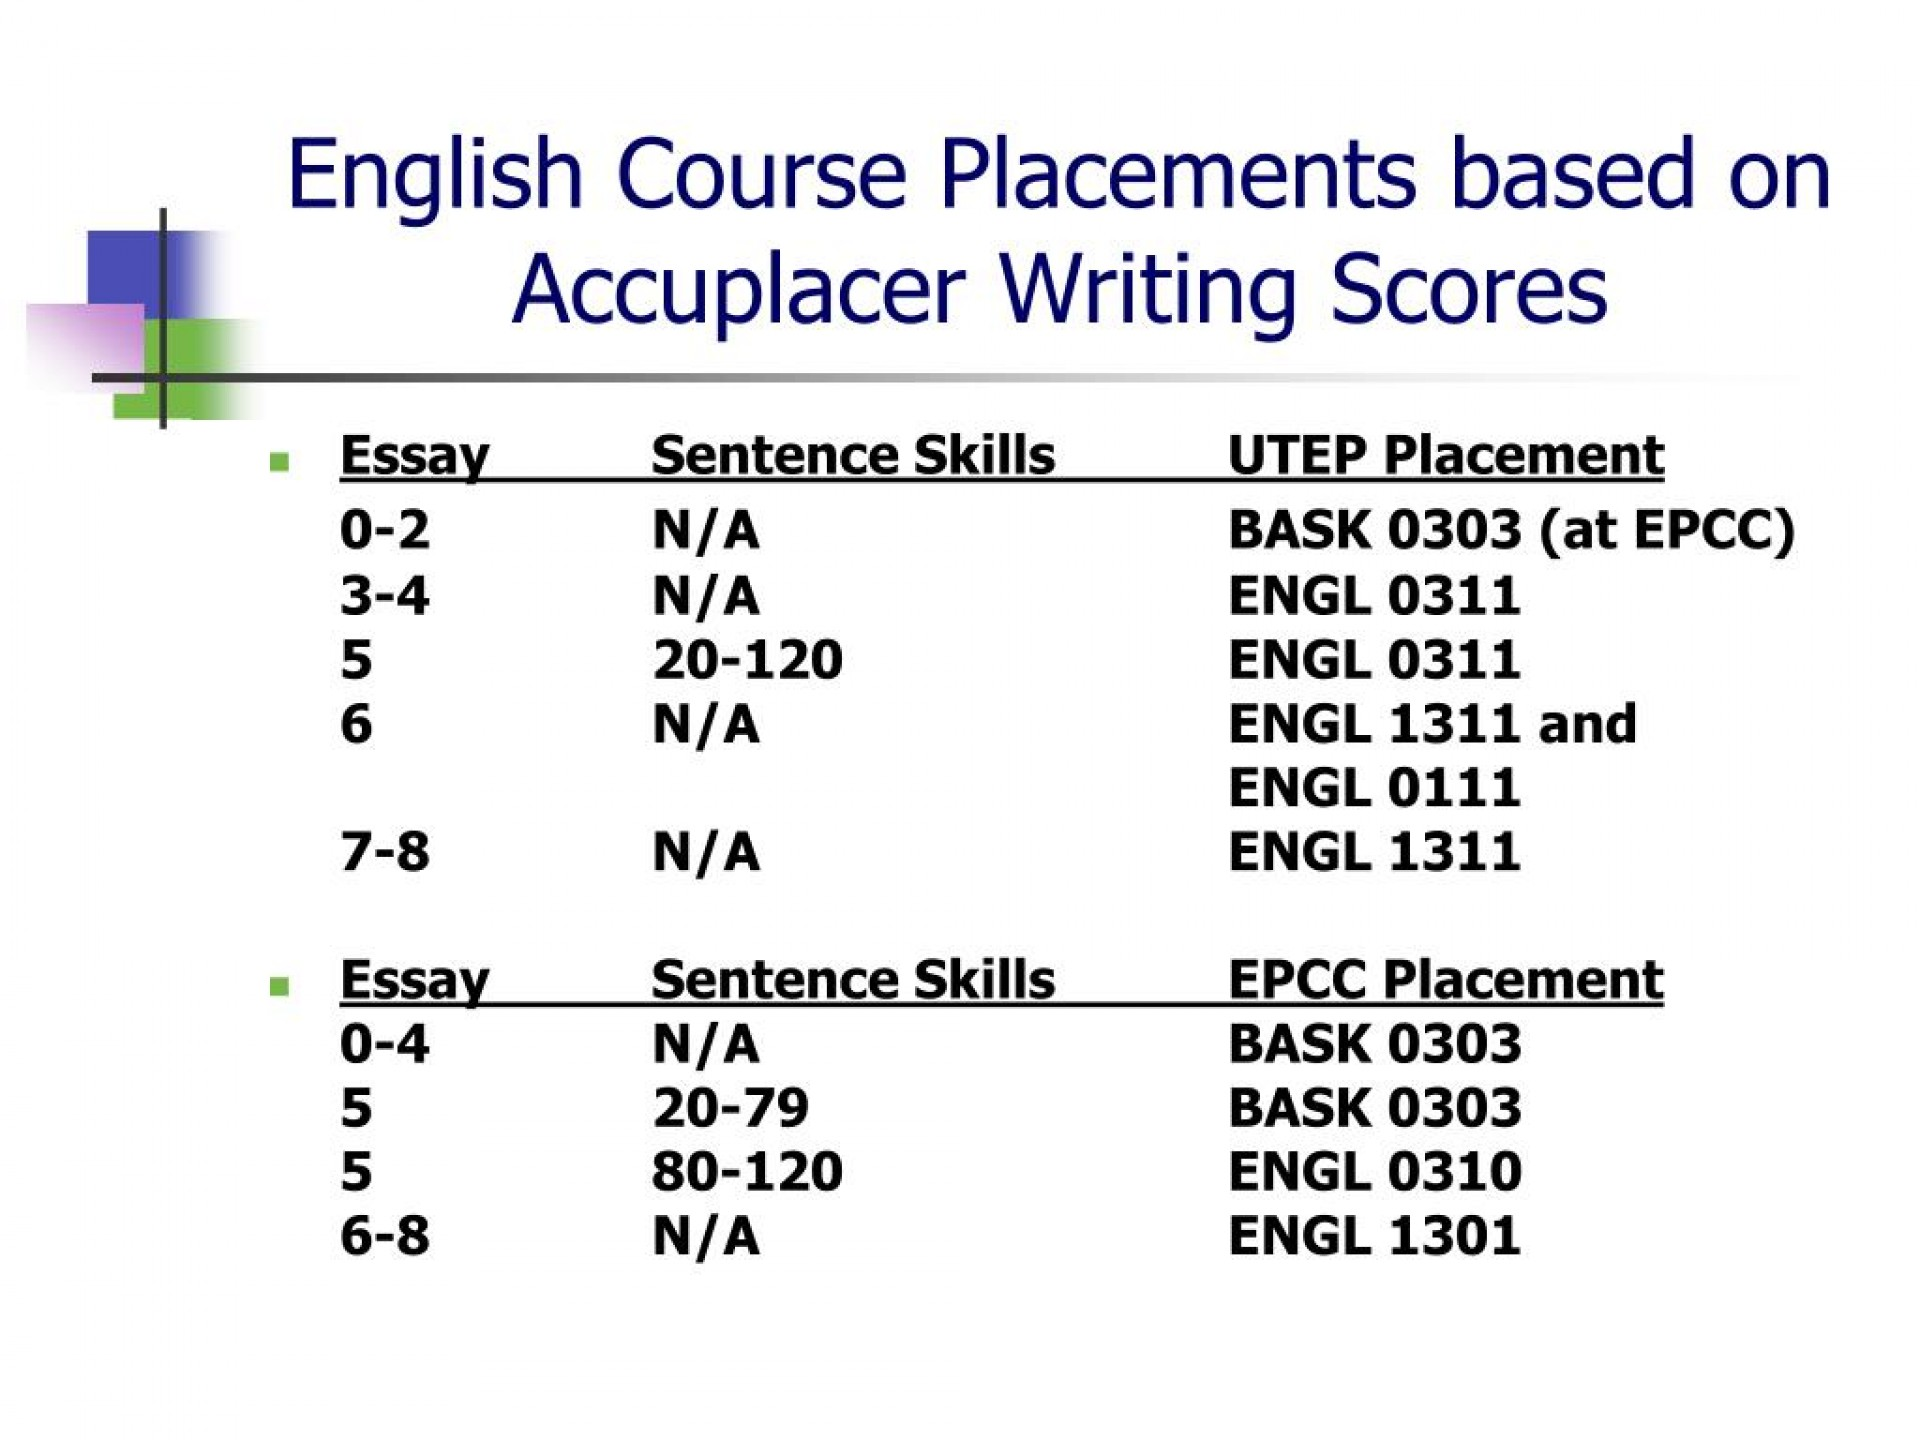 015 Essay Example English Course Placements Based On Accuplacer Writing Scores Outstanding Score 7 Study Guide Writeplacer Success 1920